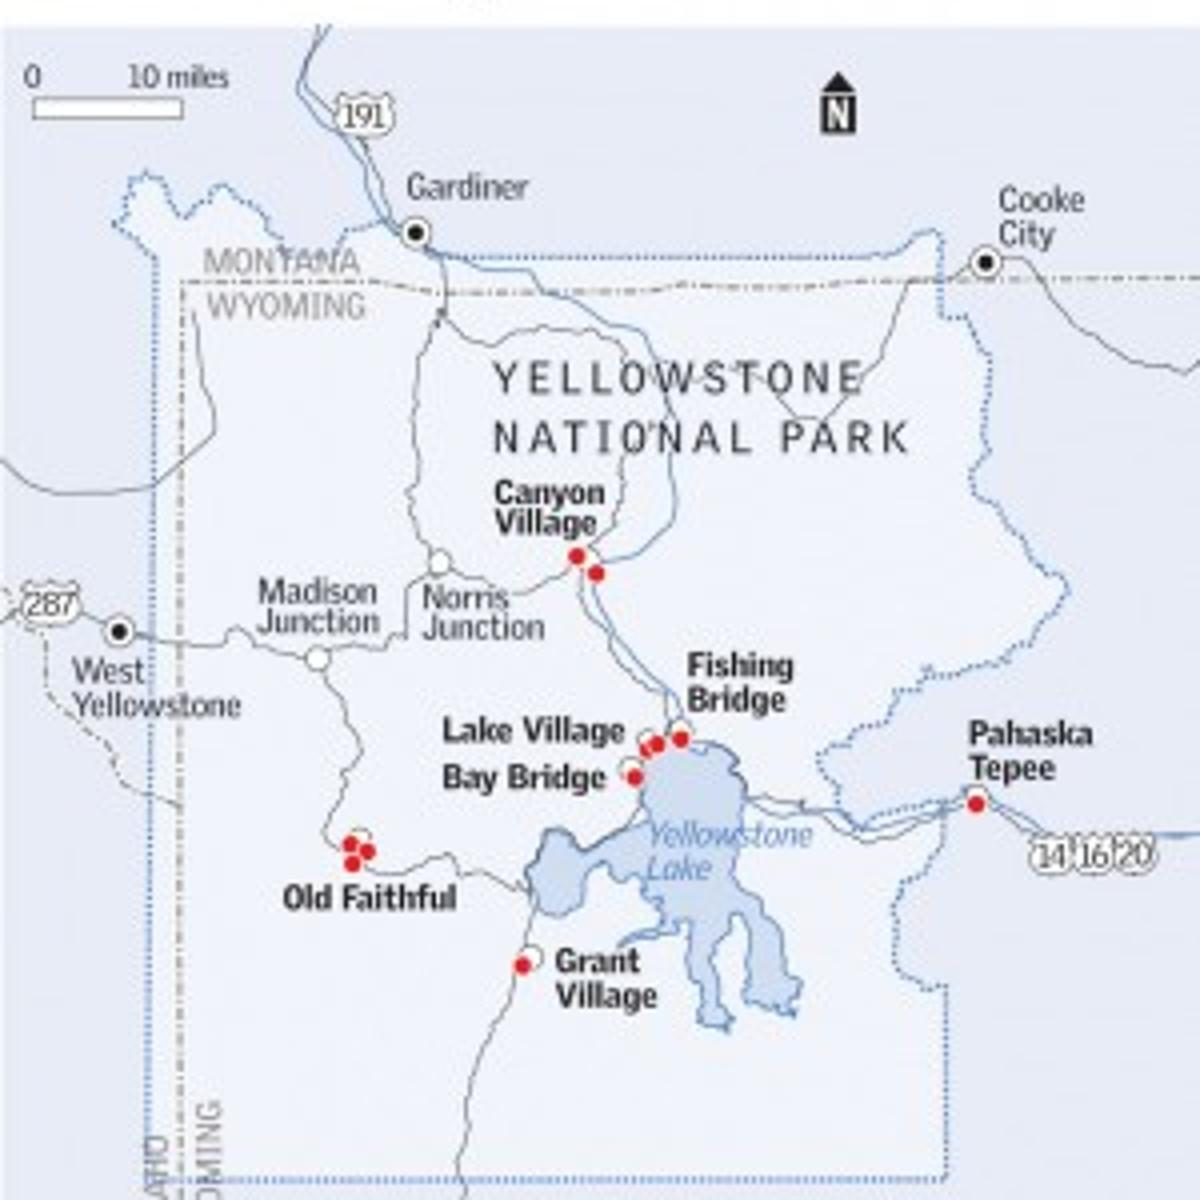 Yellowstone cleans up fuel storage, other sites with ... on madison yellowstone map, bridge bay yellowstone map, roosevelt yellowstone map, mammoth hotel yellowstone map, cody yellowstone map, tower falls yellowstone map, grand teton yellowstone map, vintage yellowstone map, printable yellowstone map, west yellowstone city map, fishing bridge yellowstone map, canyon yellowstone map, west thumb yellowstone map, north yellowstone map, gibbon river yellowstone map, detailed yellowstone map, lake yellowstone map, wyoming yellowstone map, yellowstone national park map, mammoth springs yellowstone map,